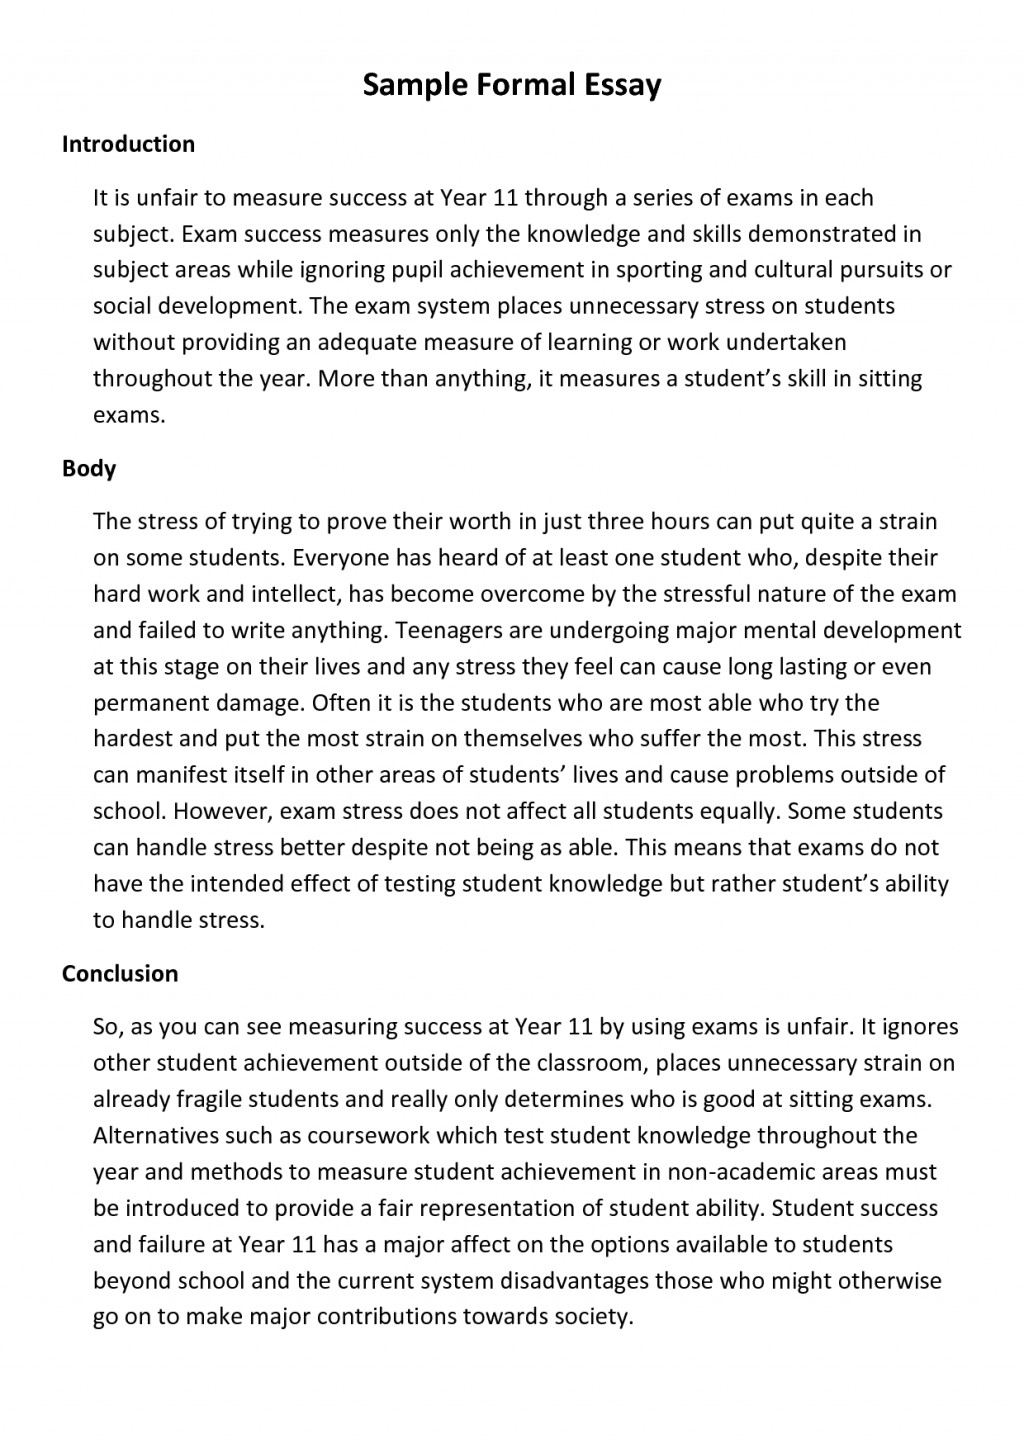 002 Formal Essay Definition Example Format 326903 Best Literary And Language Writing Large